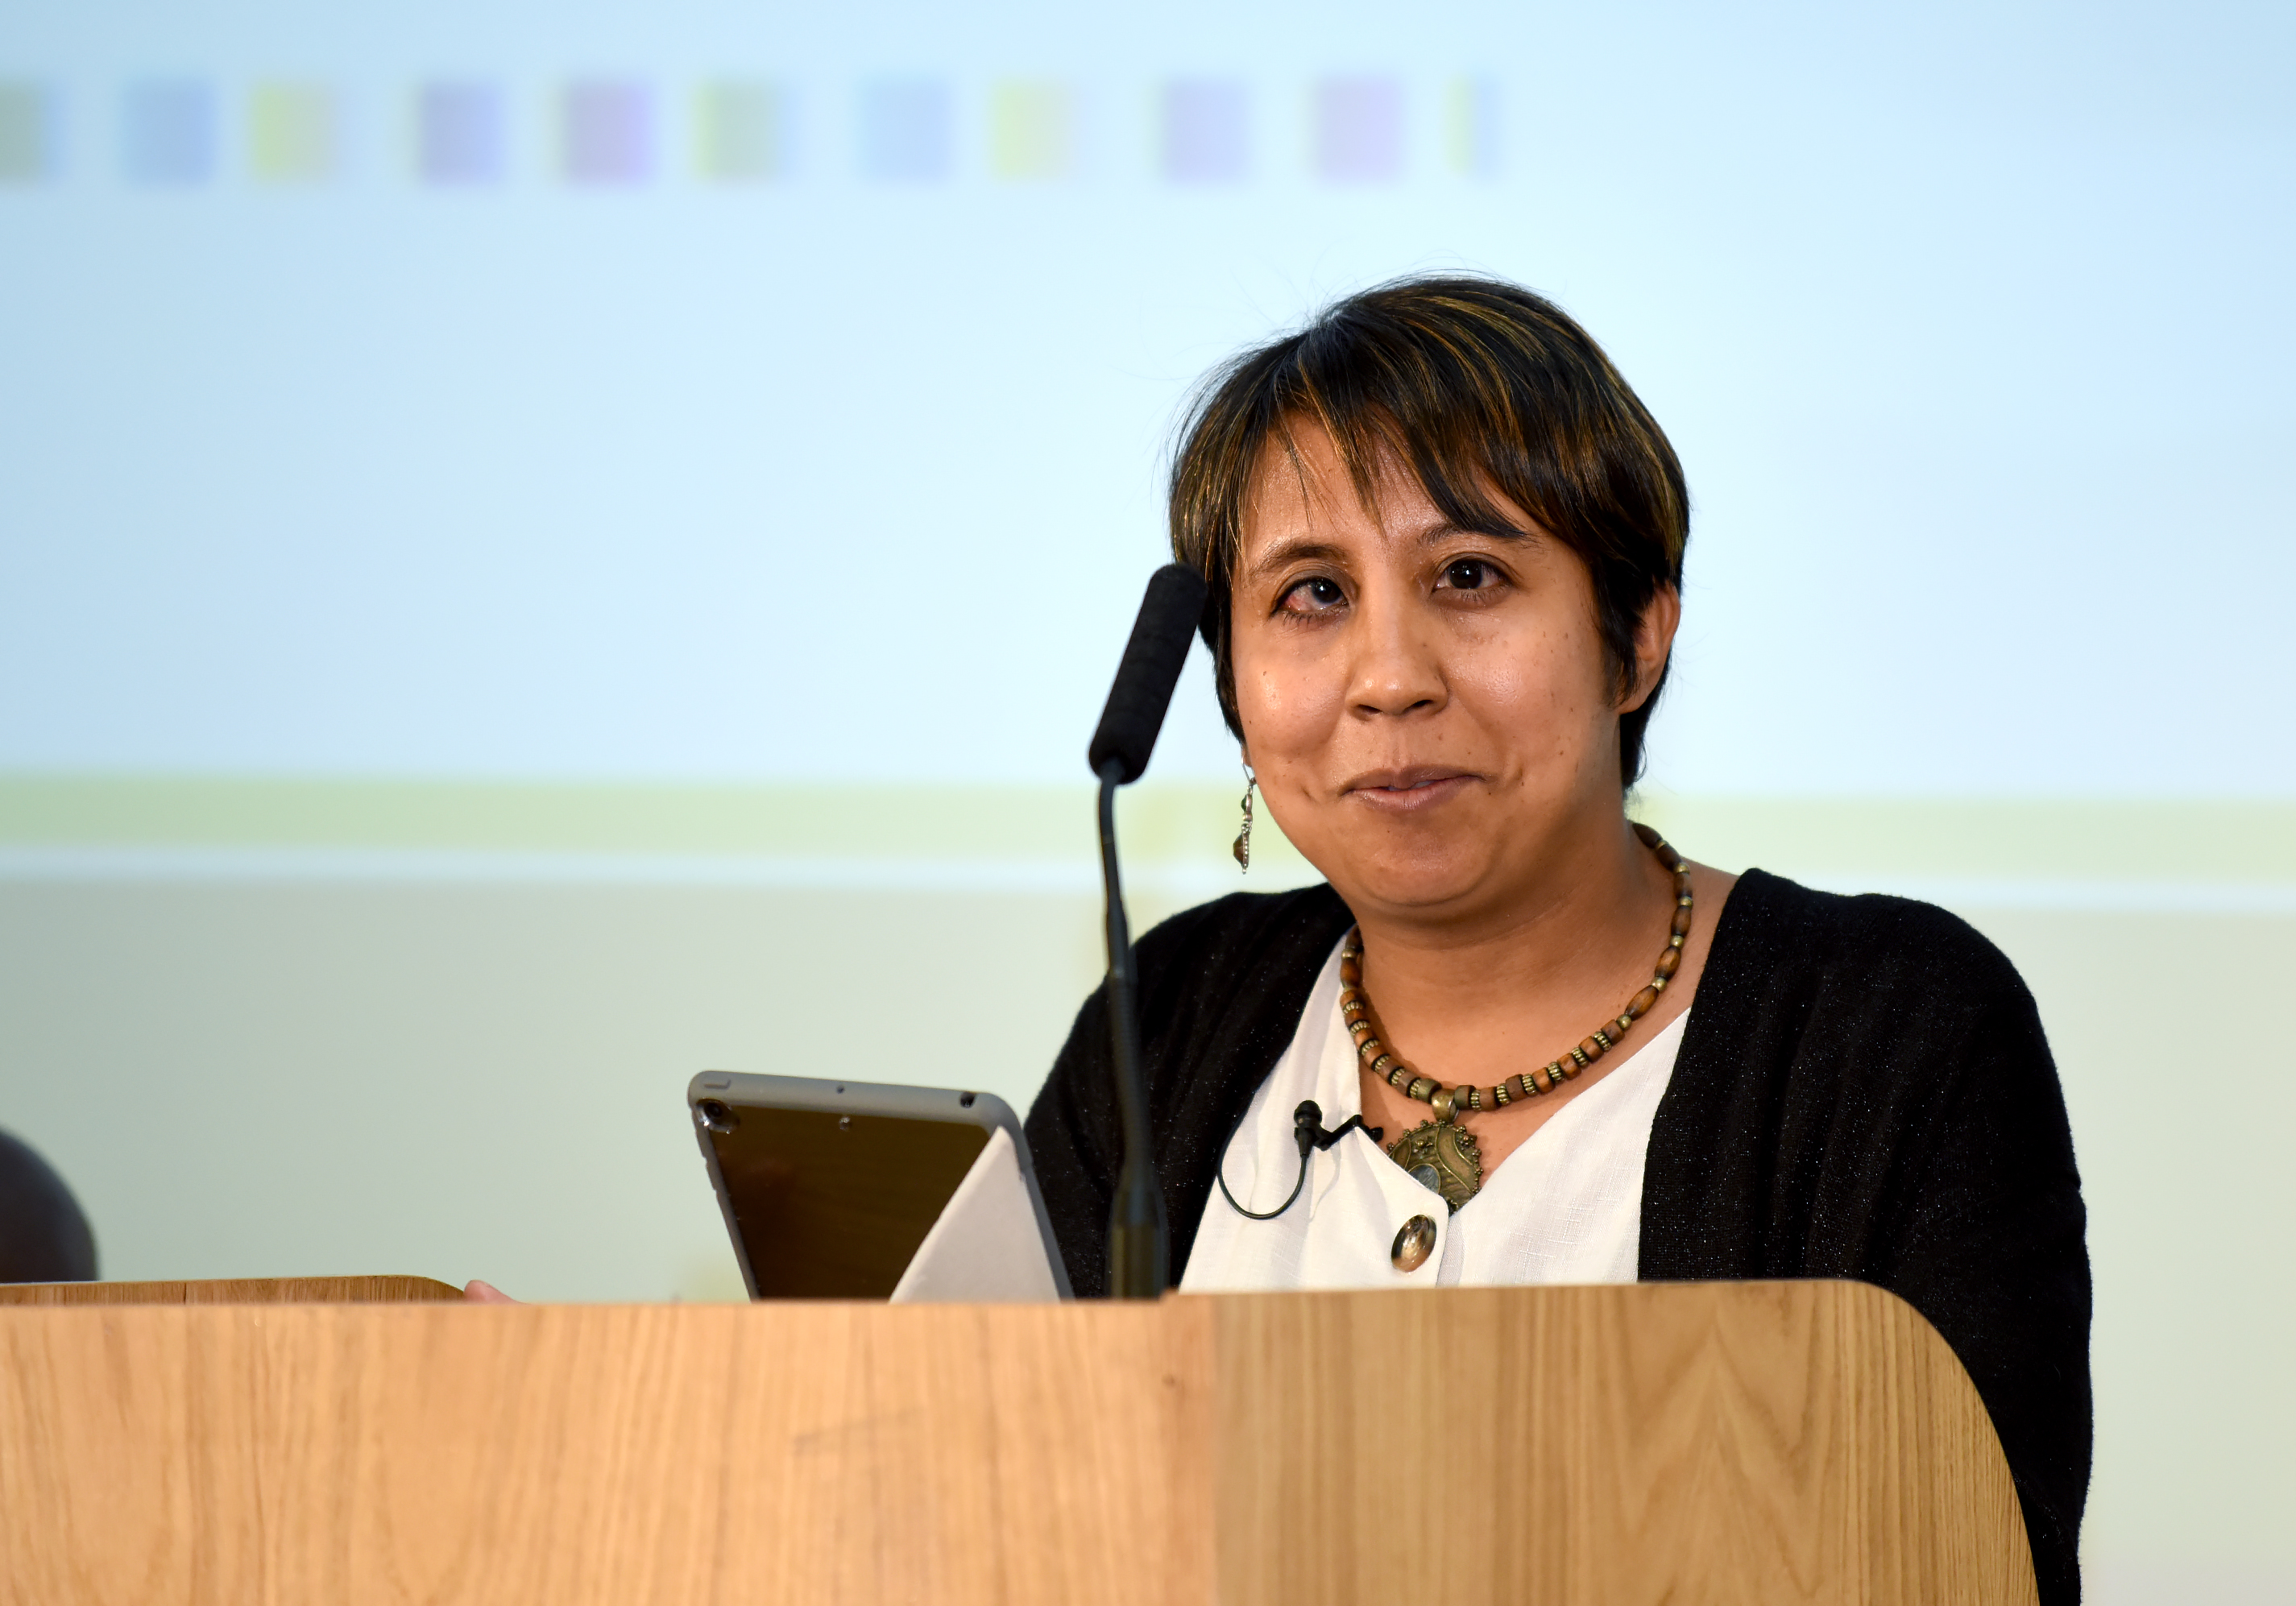 Nafisa Baboo talks about Inclusive Education 'Lost in Translation' – Summary of UKFIET 2019 Opening Plenary Told in Tweets